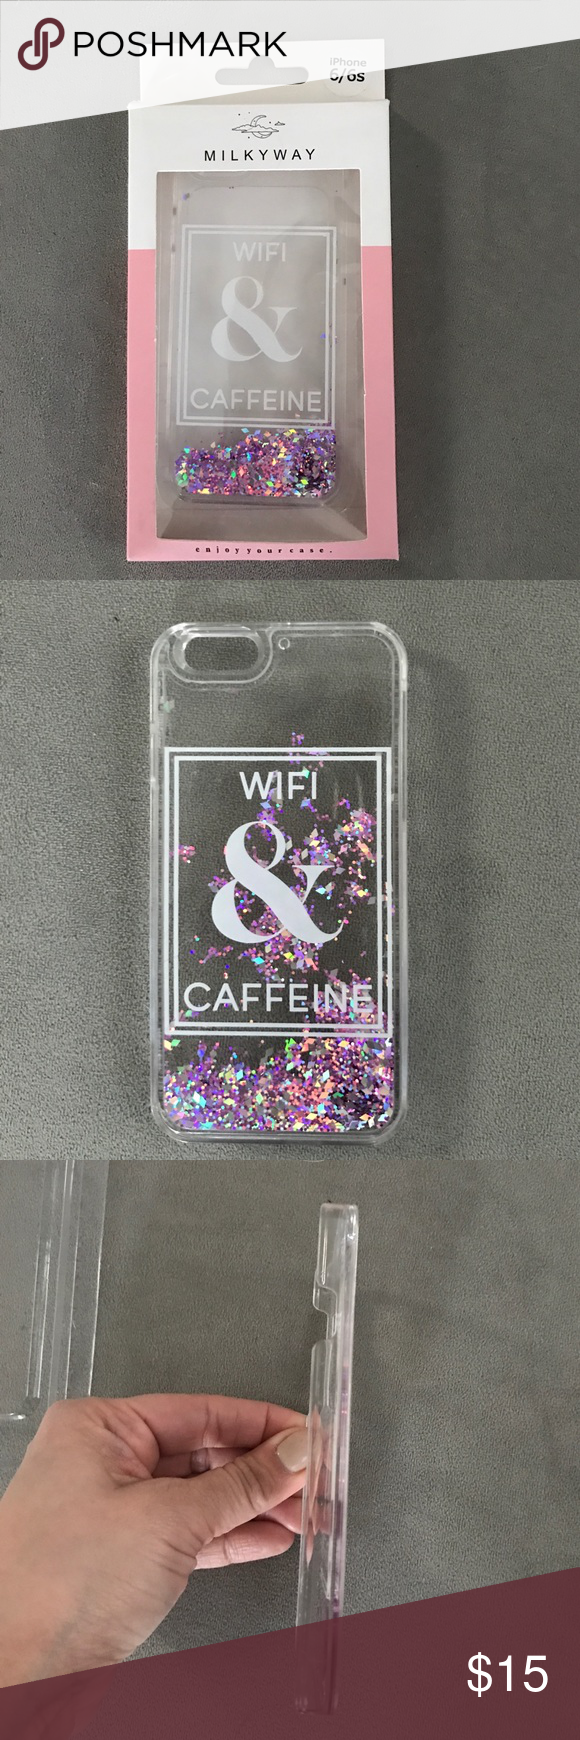 iPhone Case This is a moving glitter case with cool design. iPhone 6/6s milkyway Accessories Phone Cases